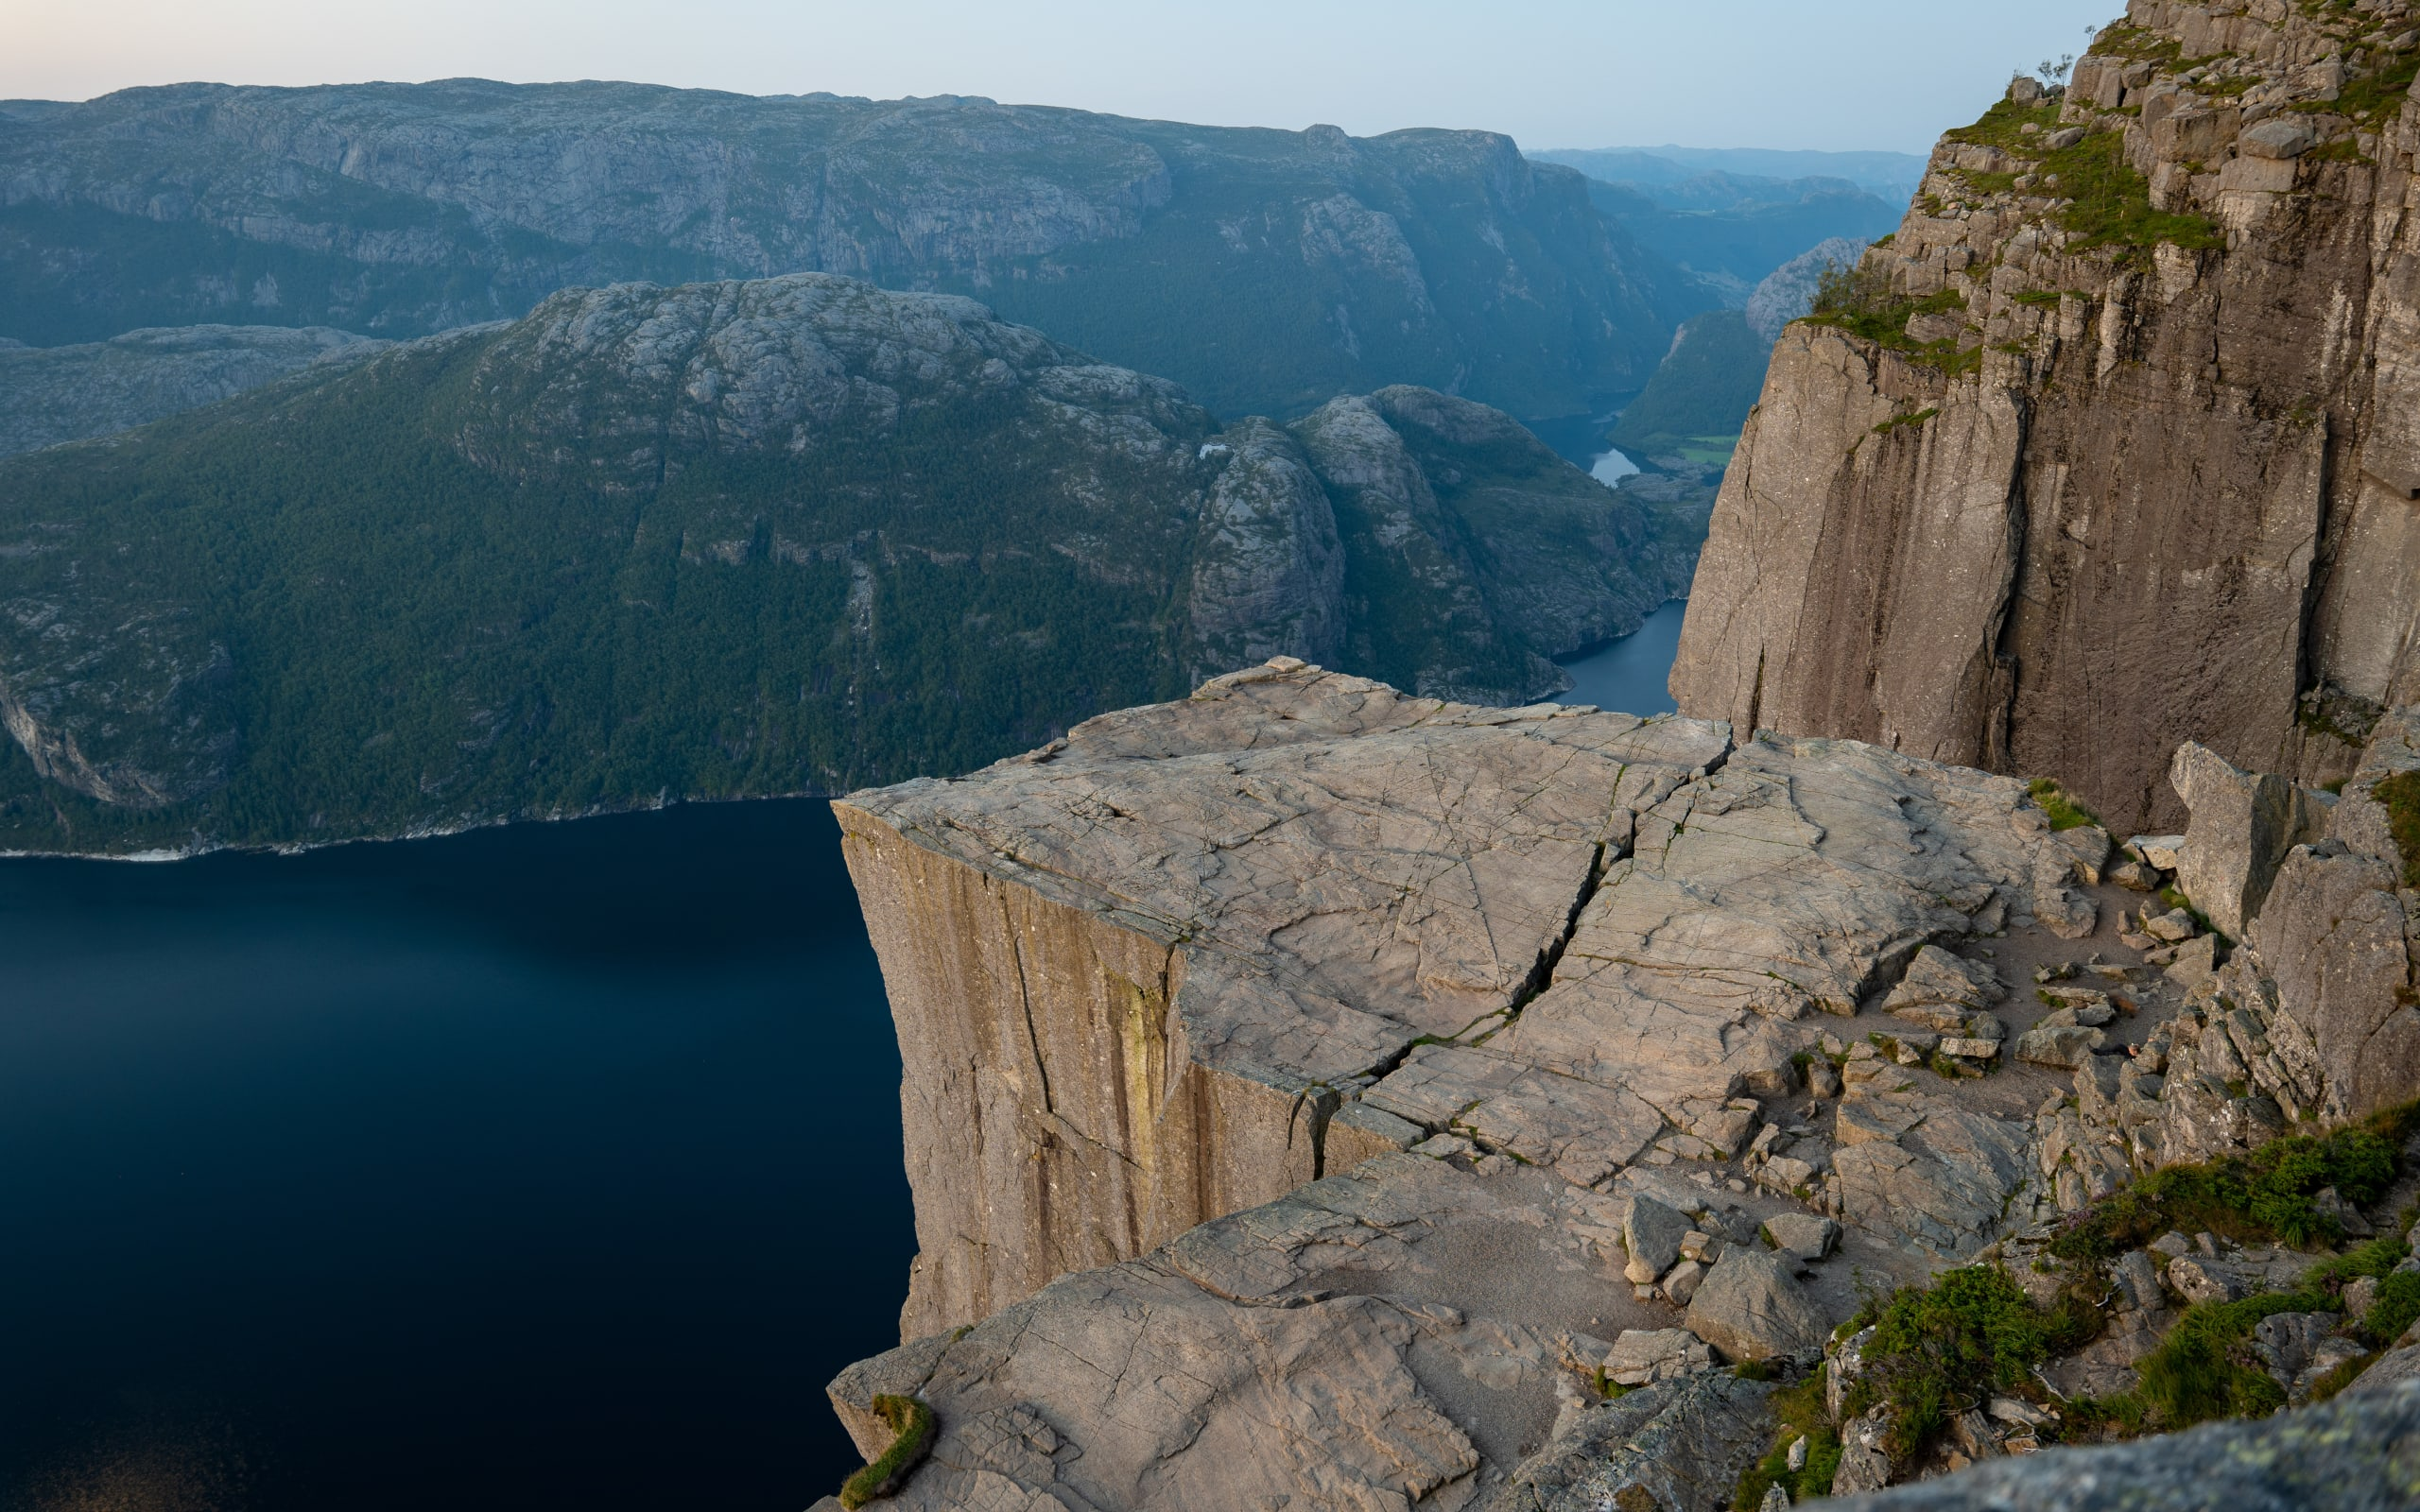 Pulpit Rock towering above the Lysefjord